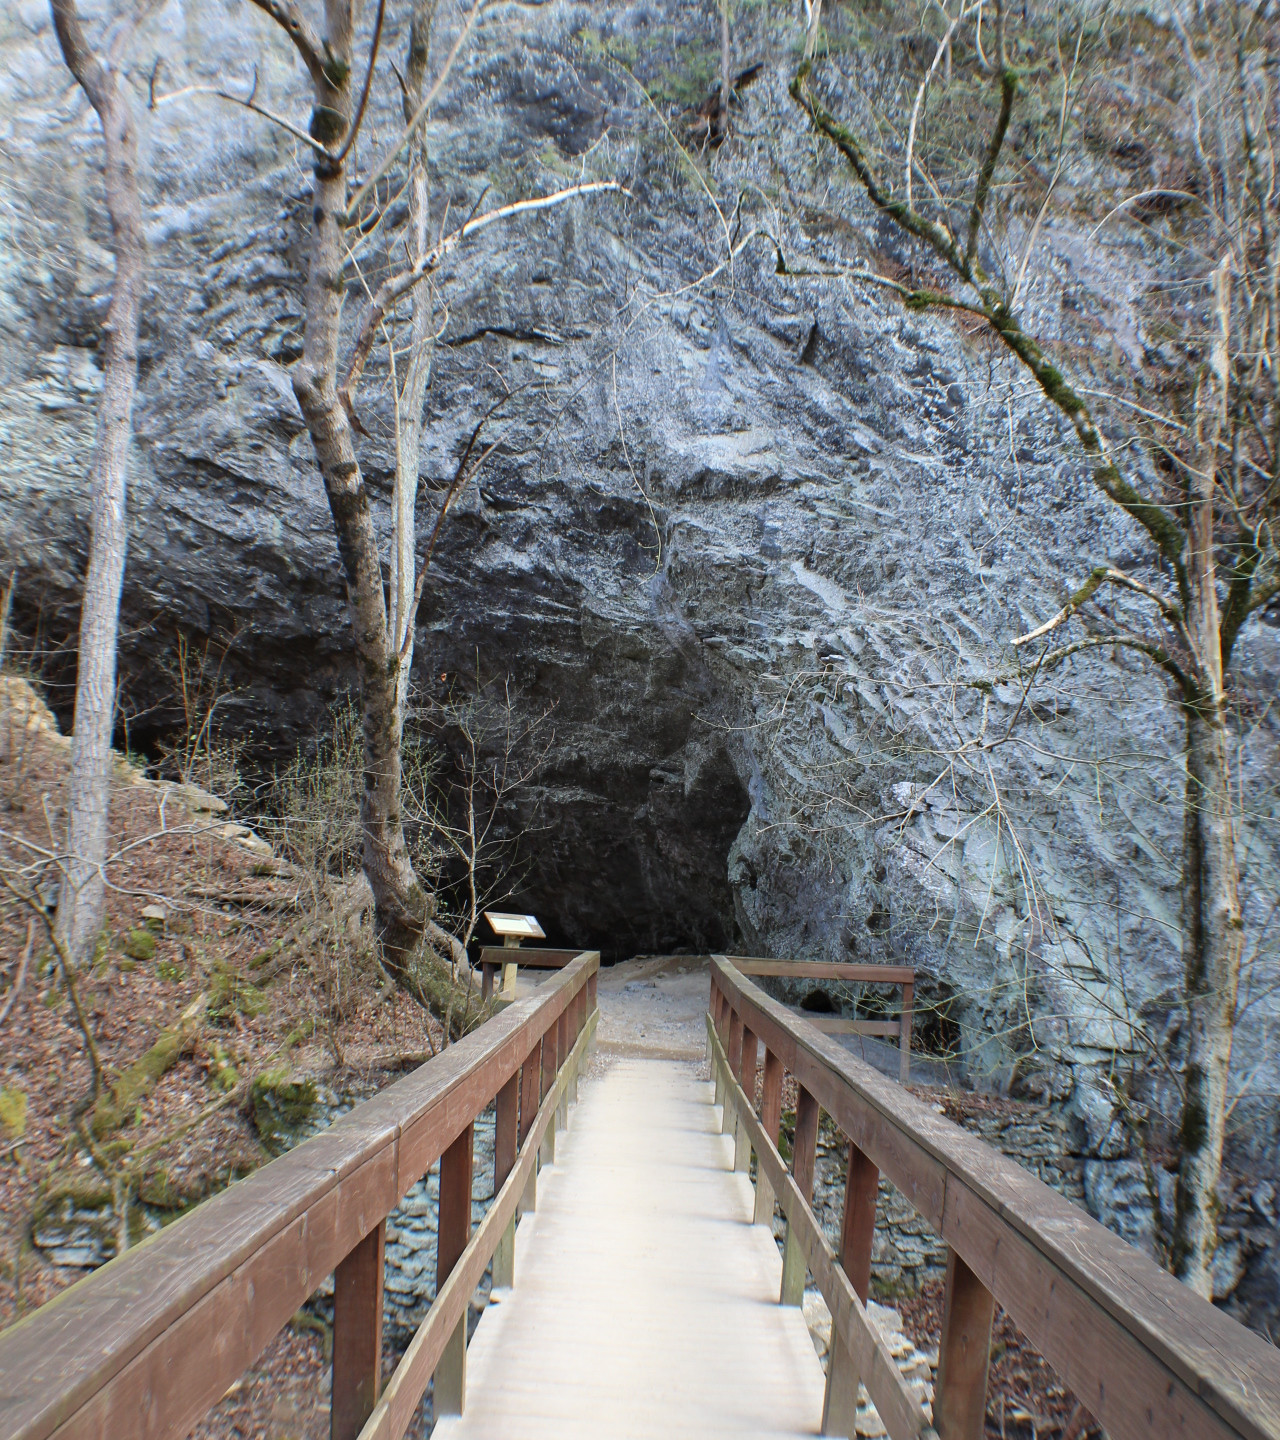 Entrance to Saltpeter Cave